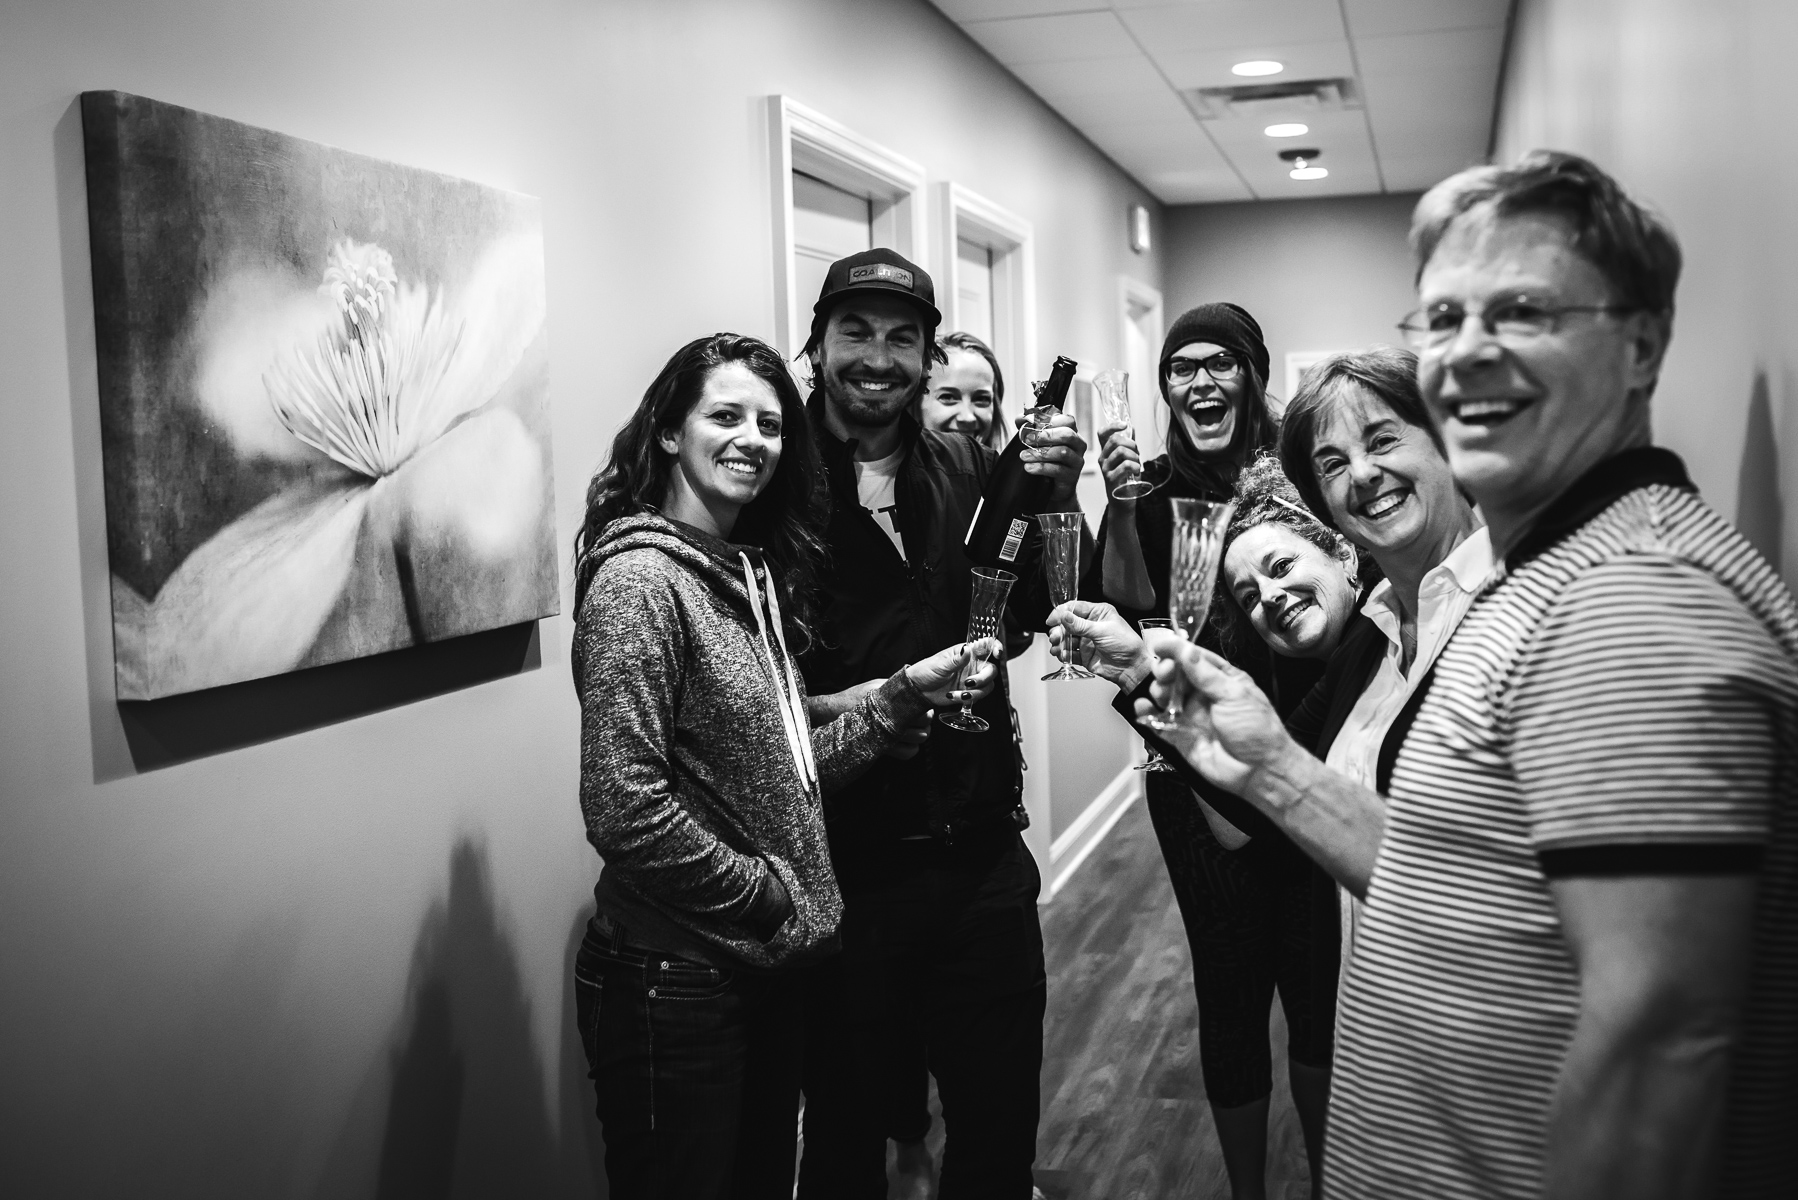 family-toasts-in-hall-after-birth